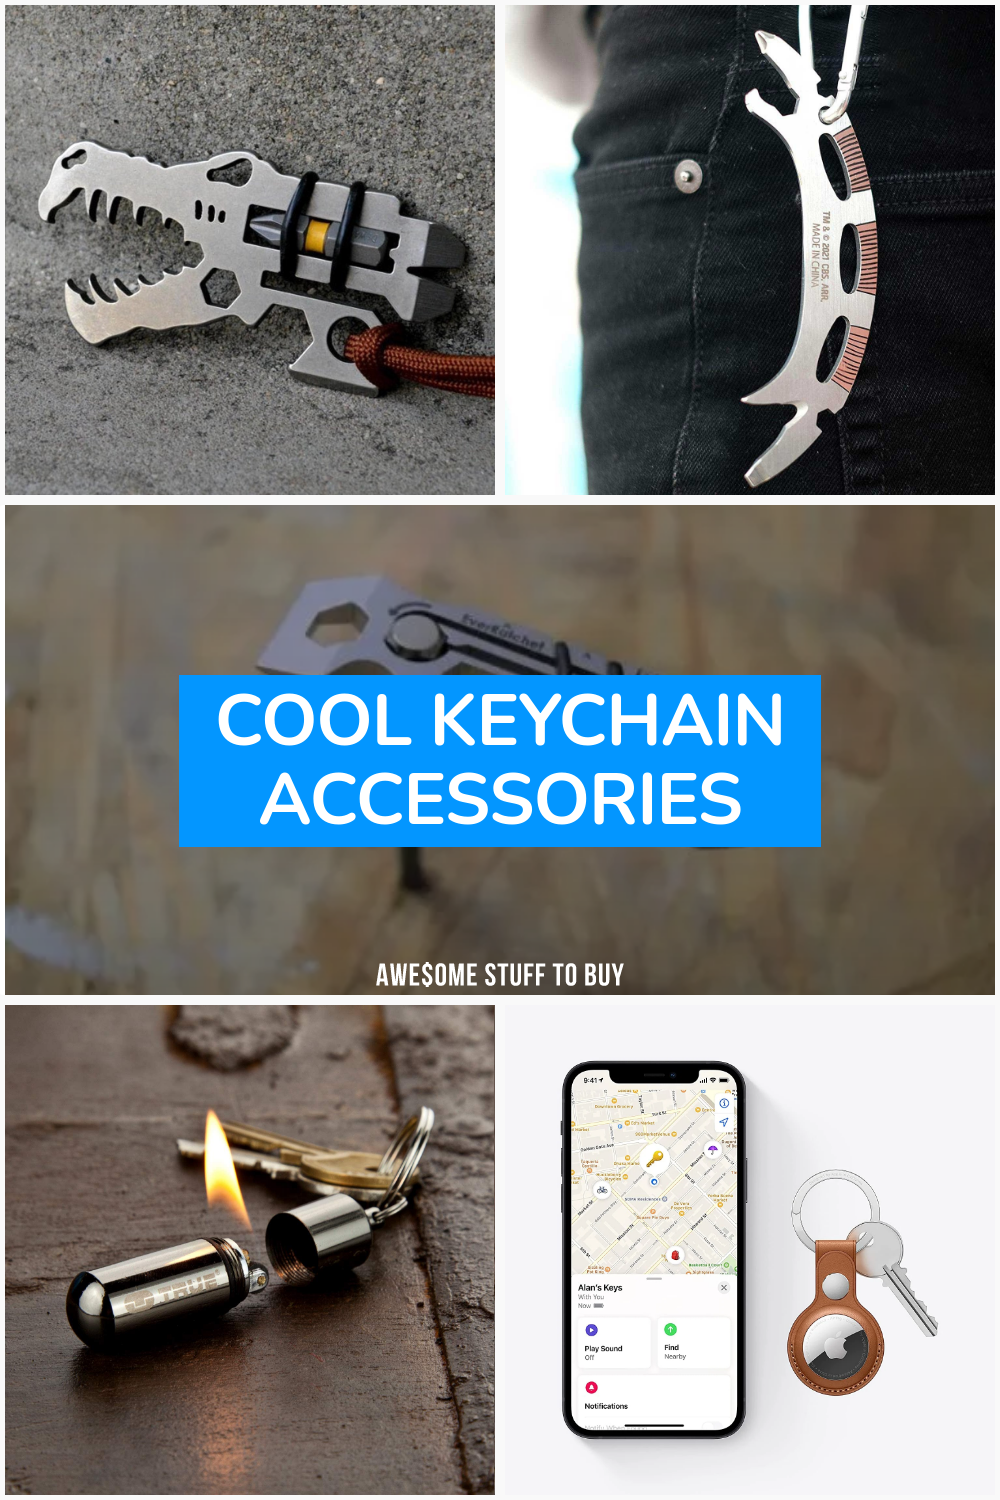 Cool Keychain Accessories // Awesome Stuff to Buy